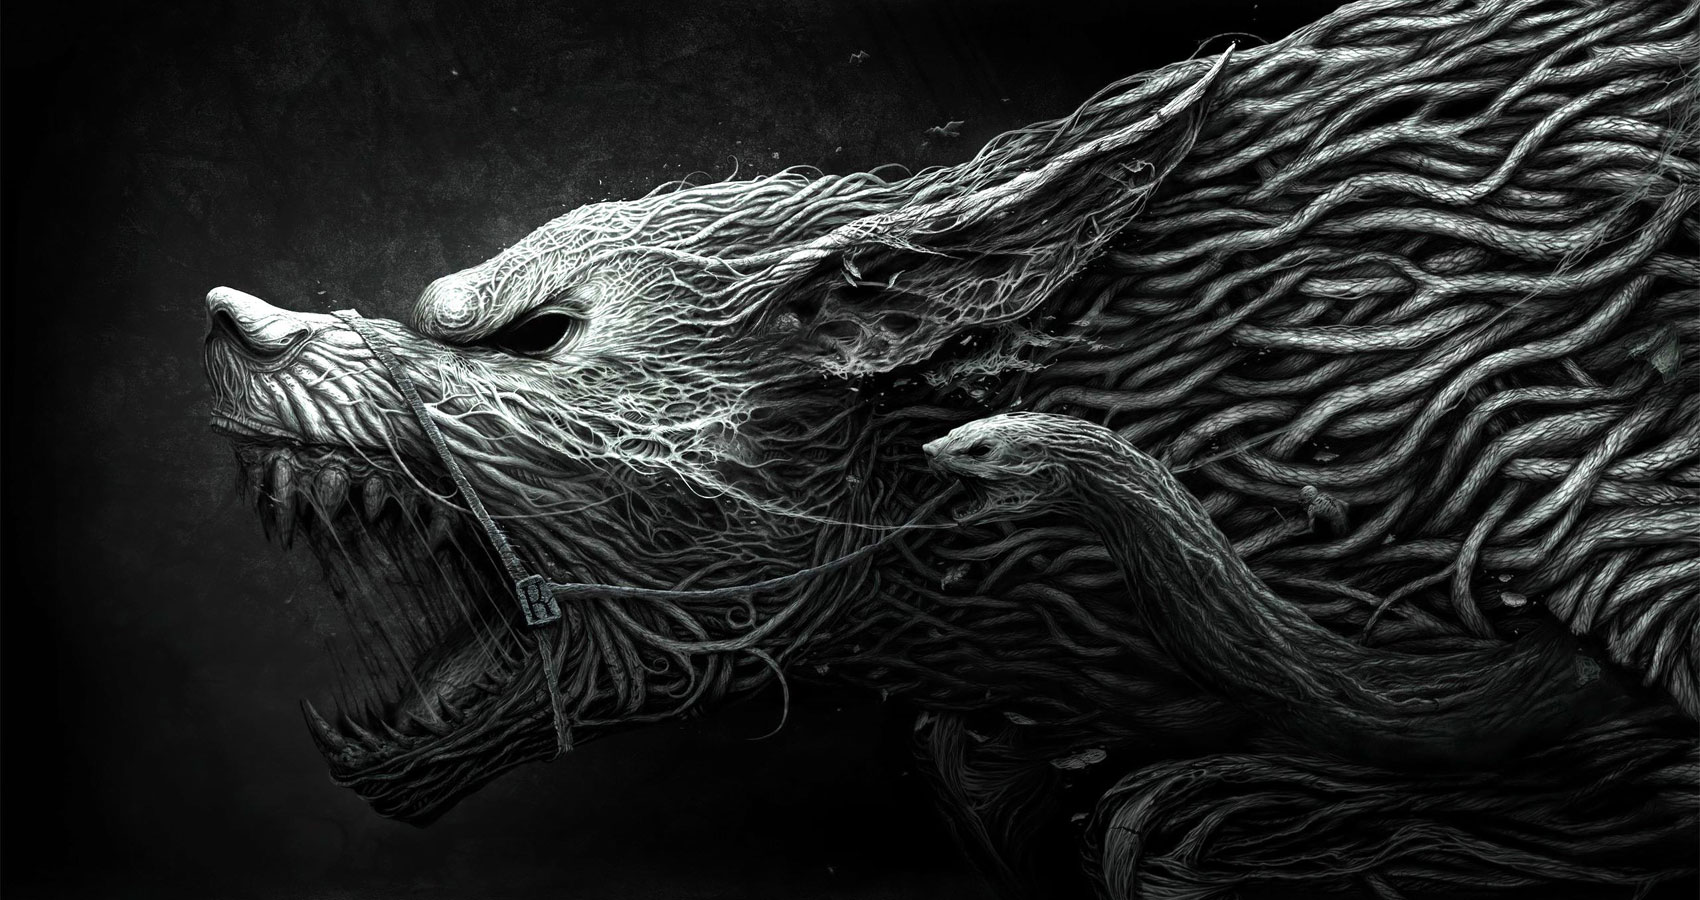 Beast Of The Darkness, by J.M.G. a.k.a. Enigma at Spillwords.com